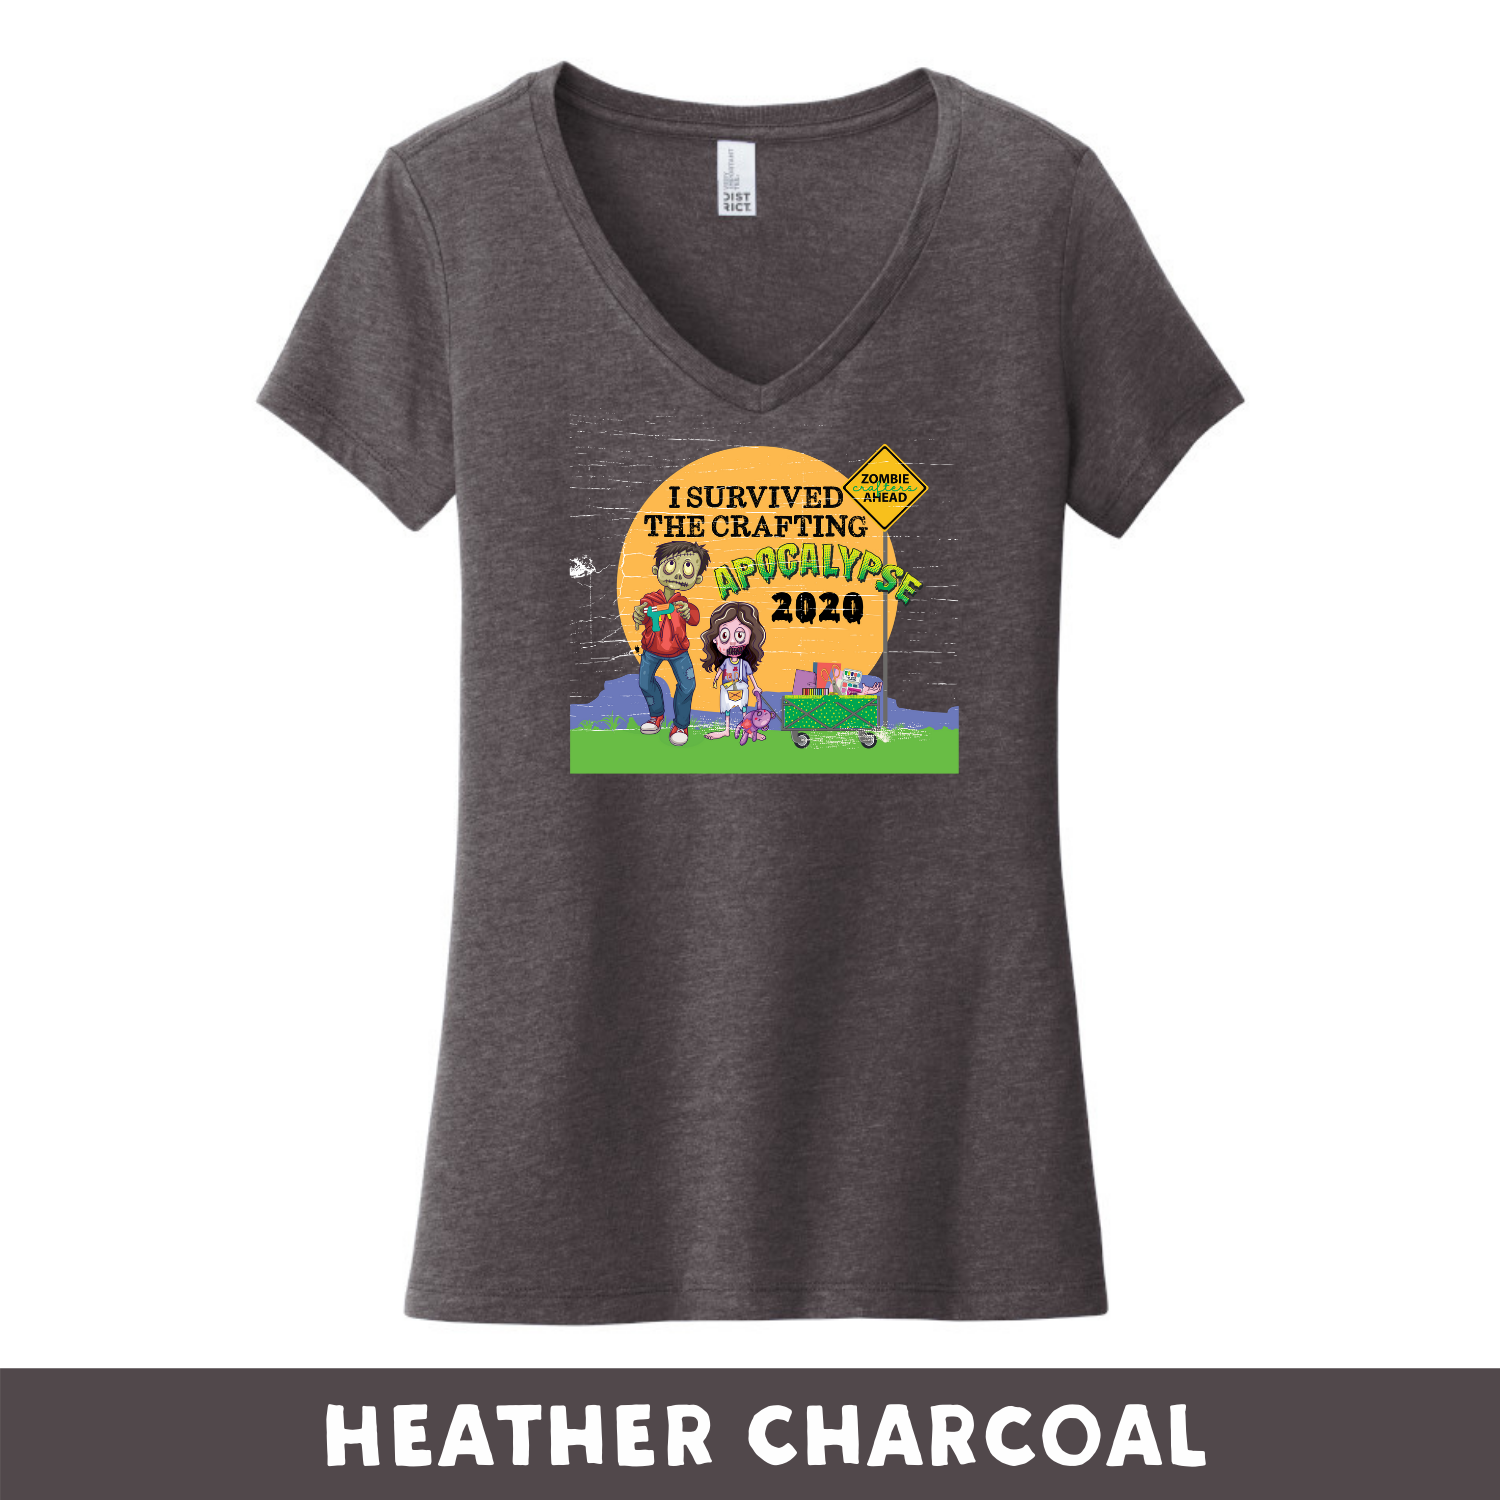 Heather Charcoal - Woman's Cut V-Neck - Heathered & Frosts - I Survived The 2020 Crafting Apocalypse